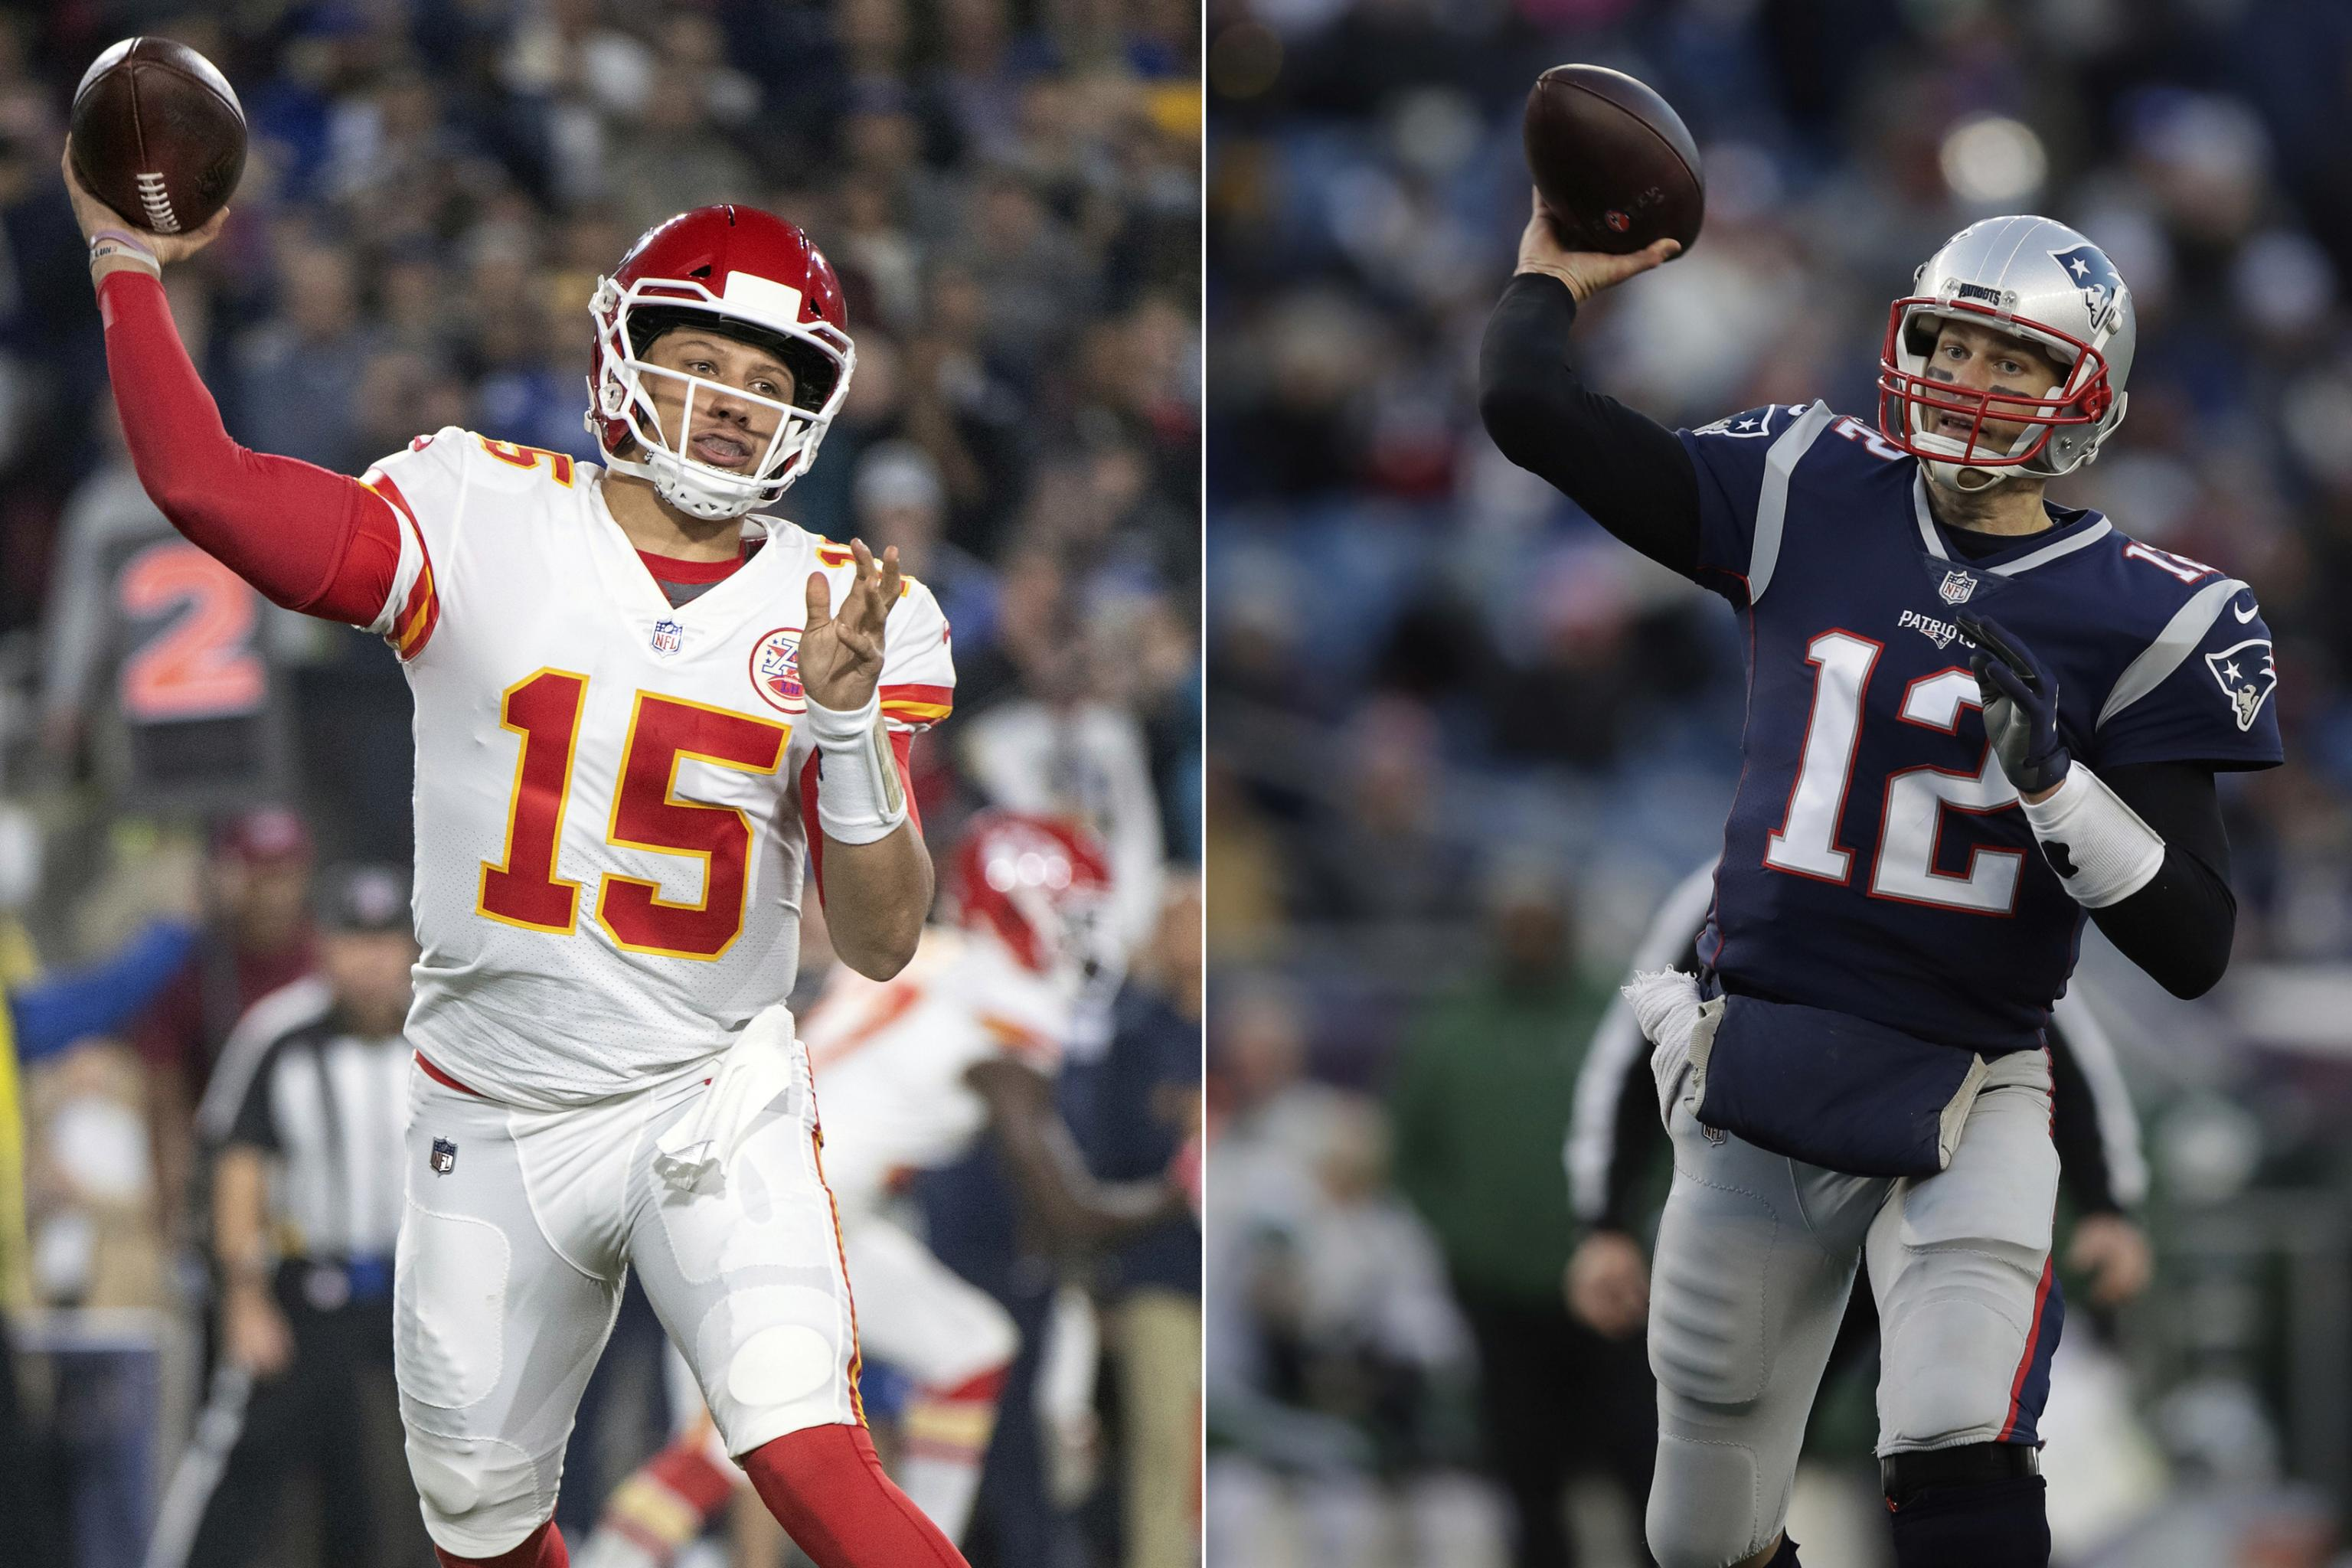 People Seem Very Interested in Mahomes vs. Brady this Sunday